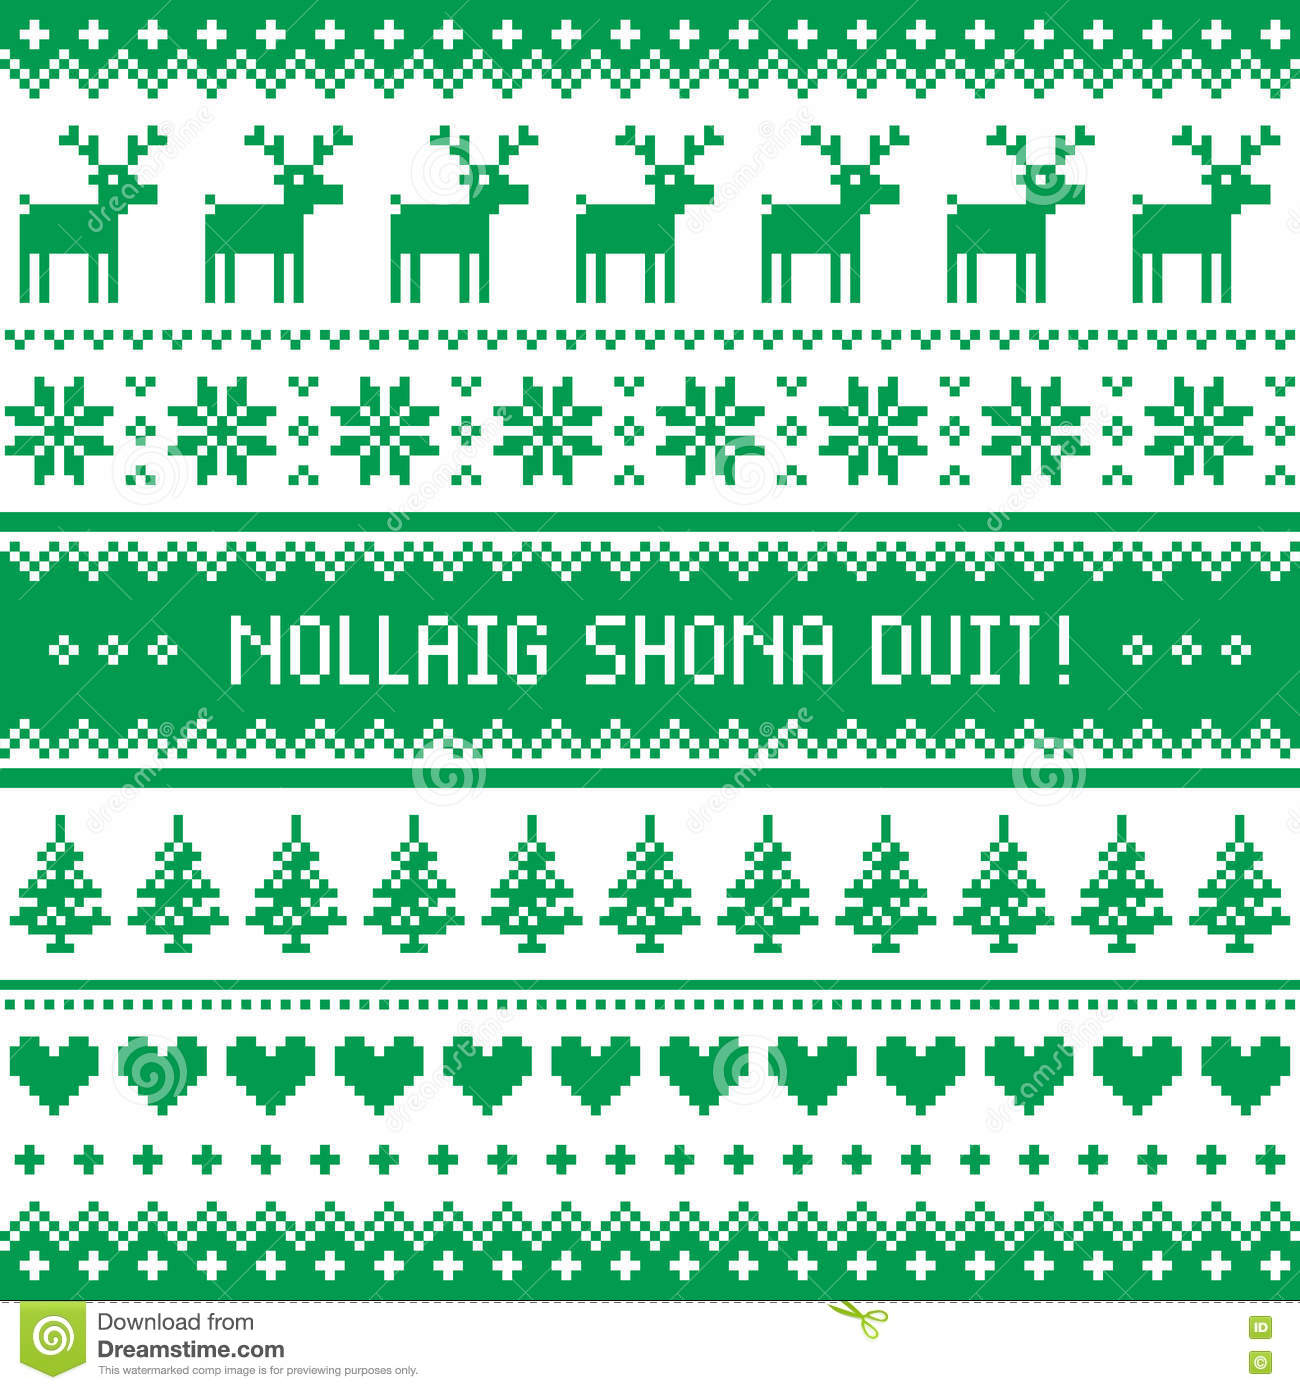 Nollaig shona duit merry christmas in irish pattern greetings nollaig shona duit merry christmas in irish pattern greetings card kristyandbryce Images